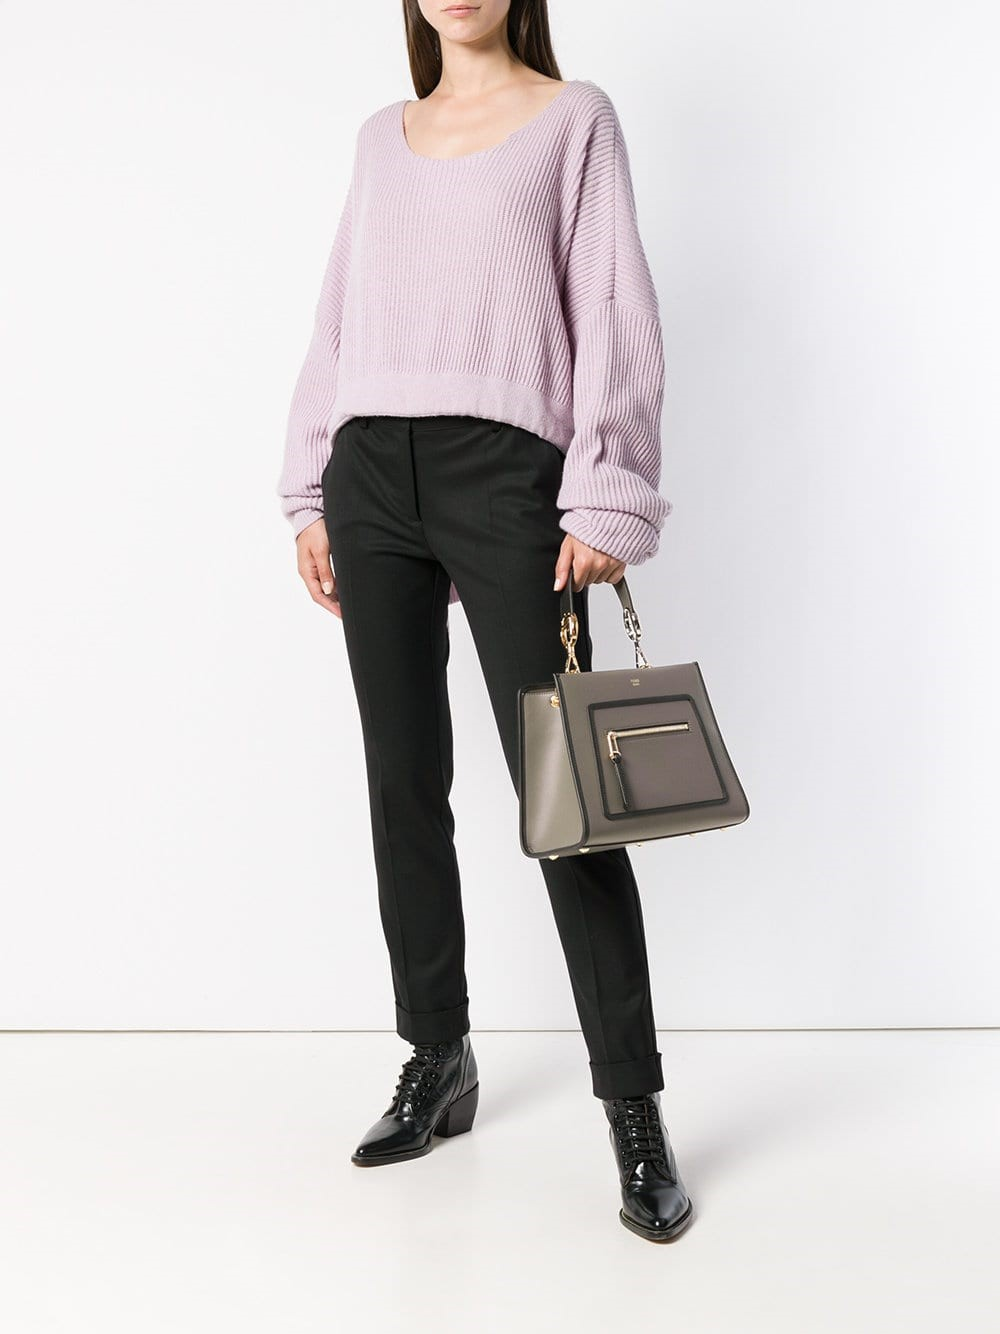 13bcd2db12d6 fendi RUNWAY TOTE BAG available on montiboutique.com - 25234